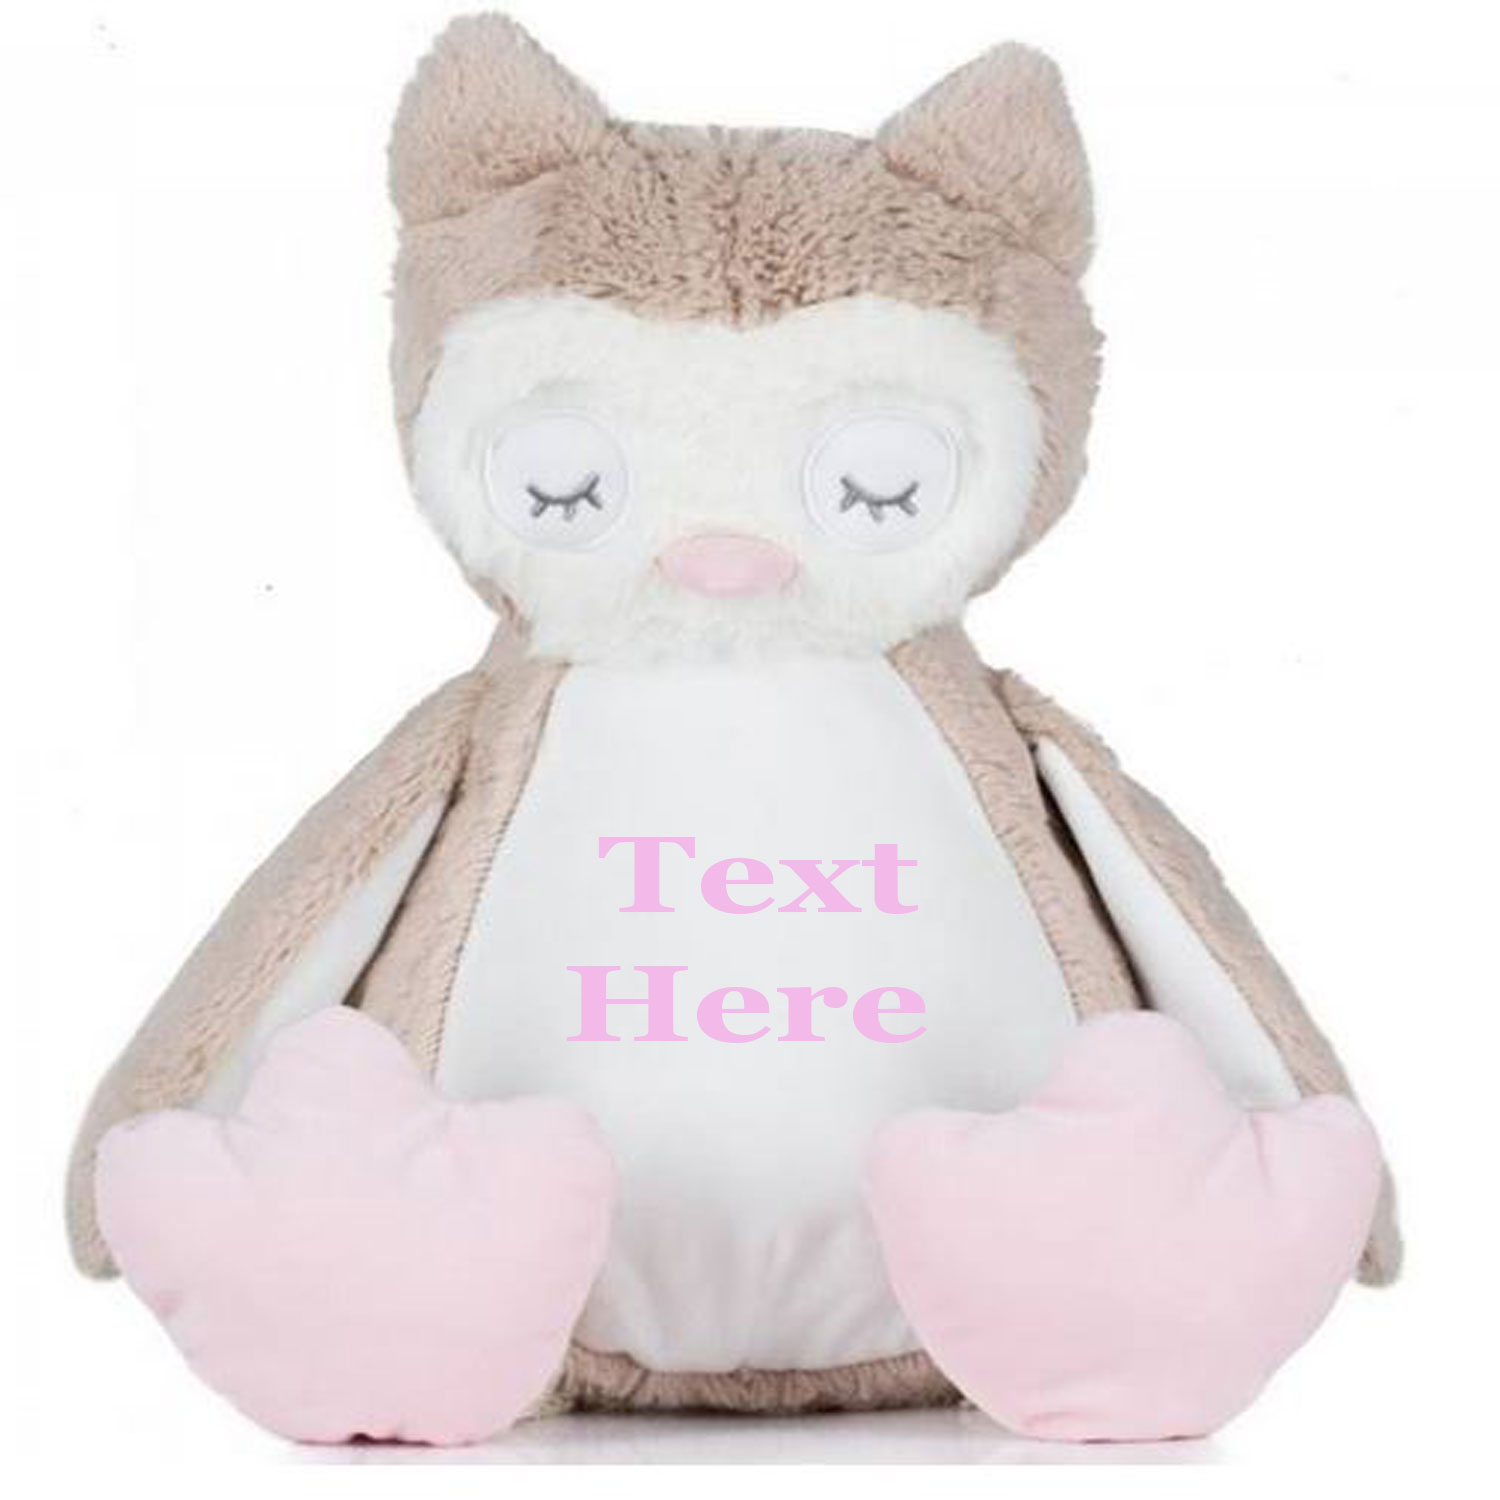 Embroidered Owl Teddy Bear With Personalised Name